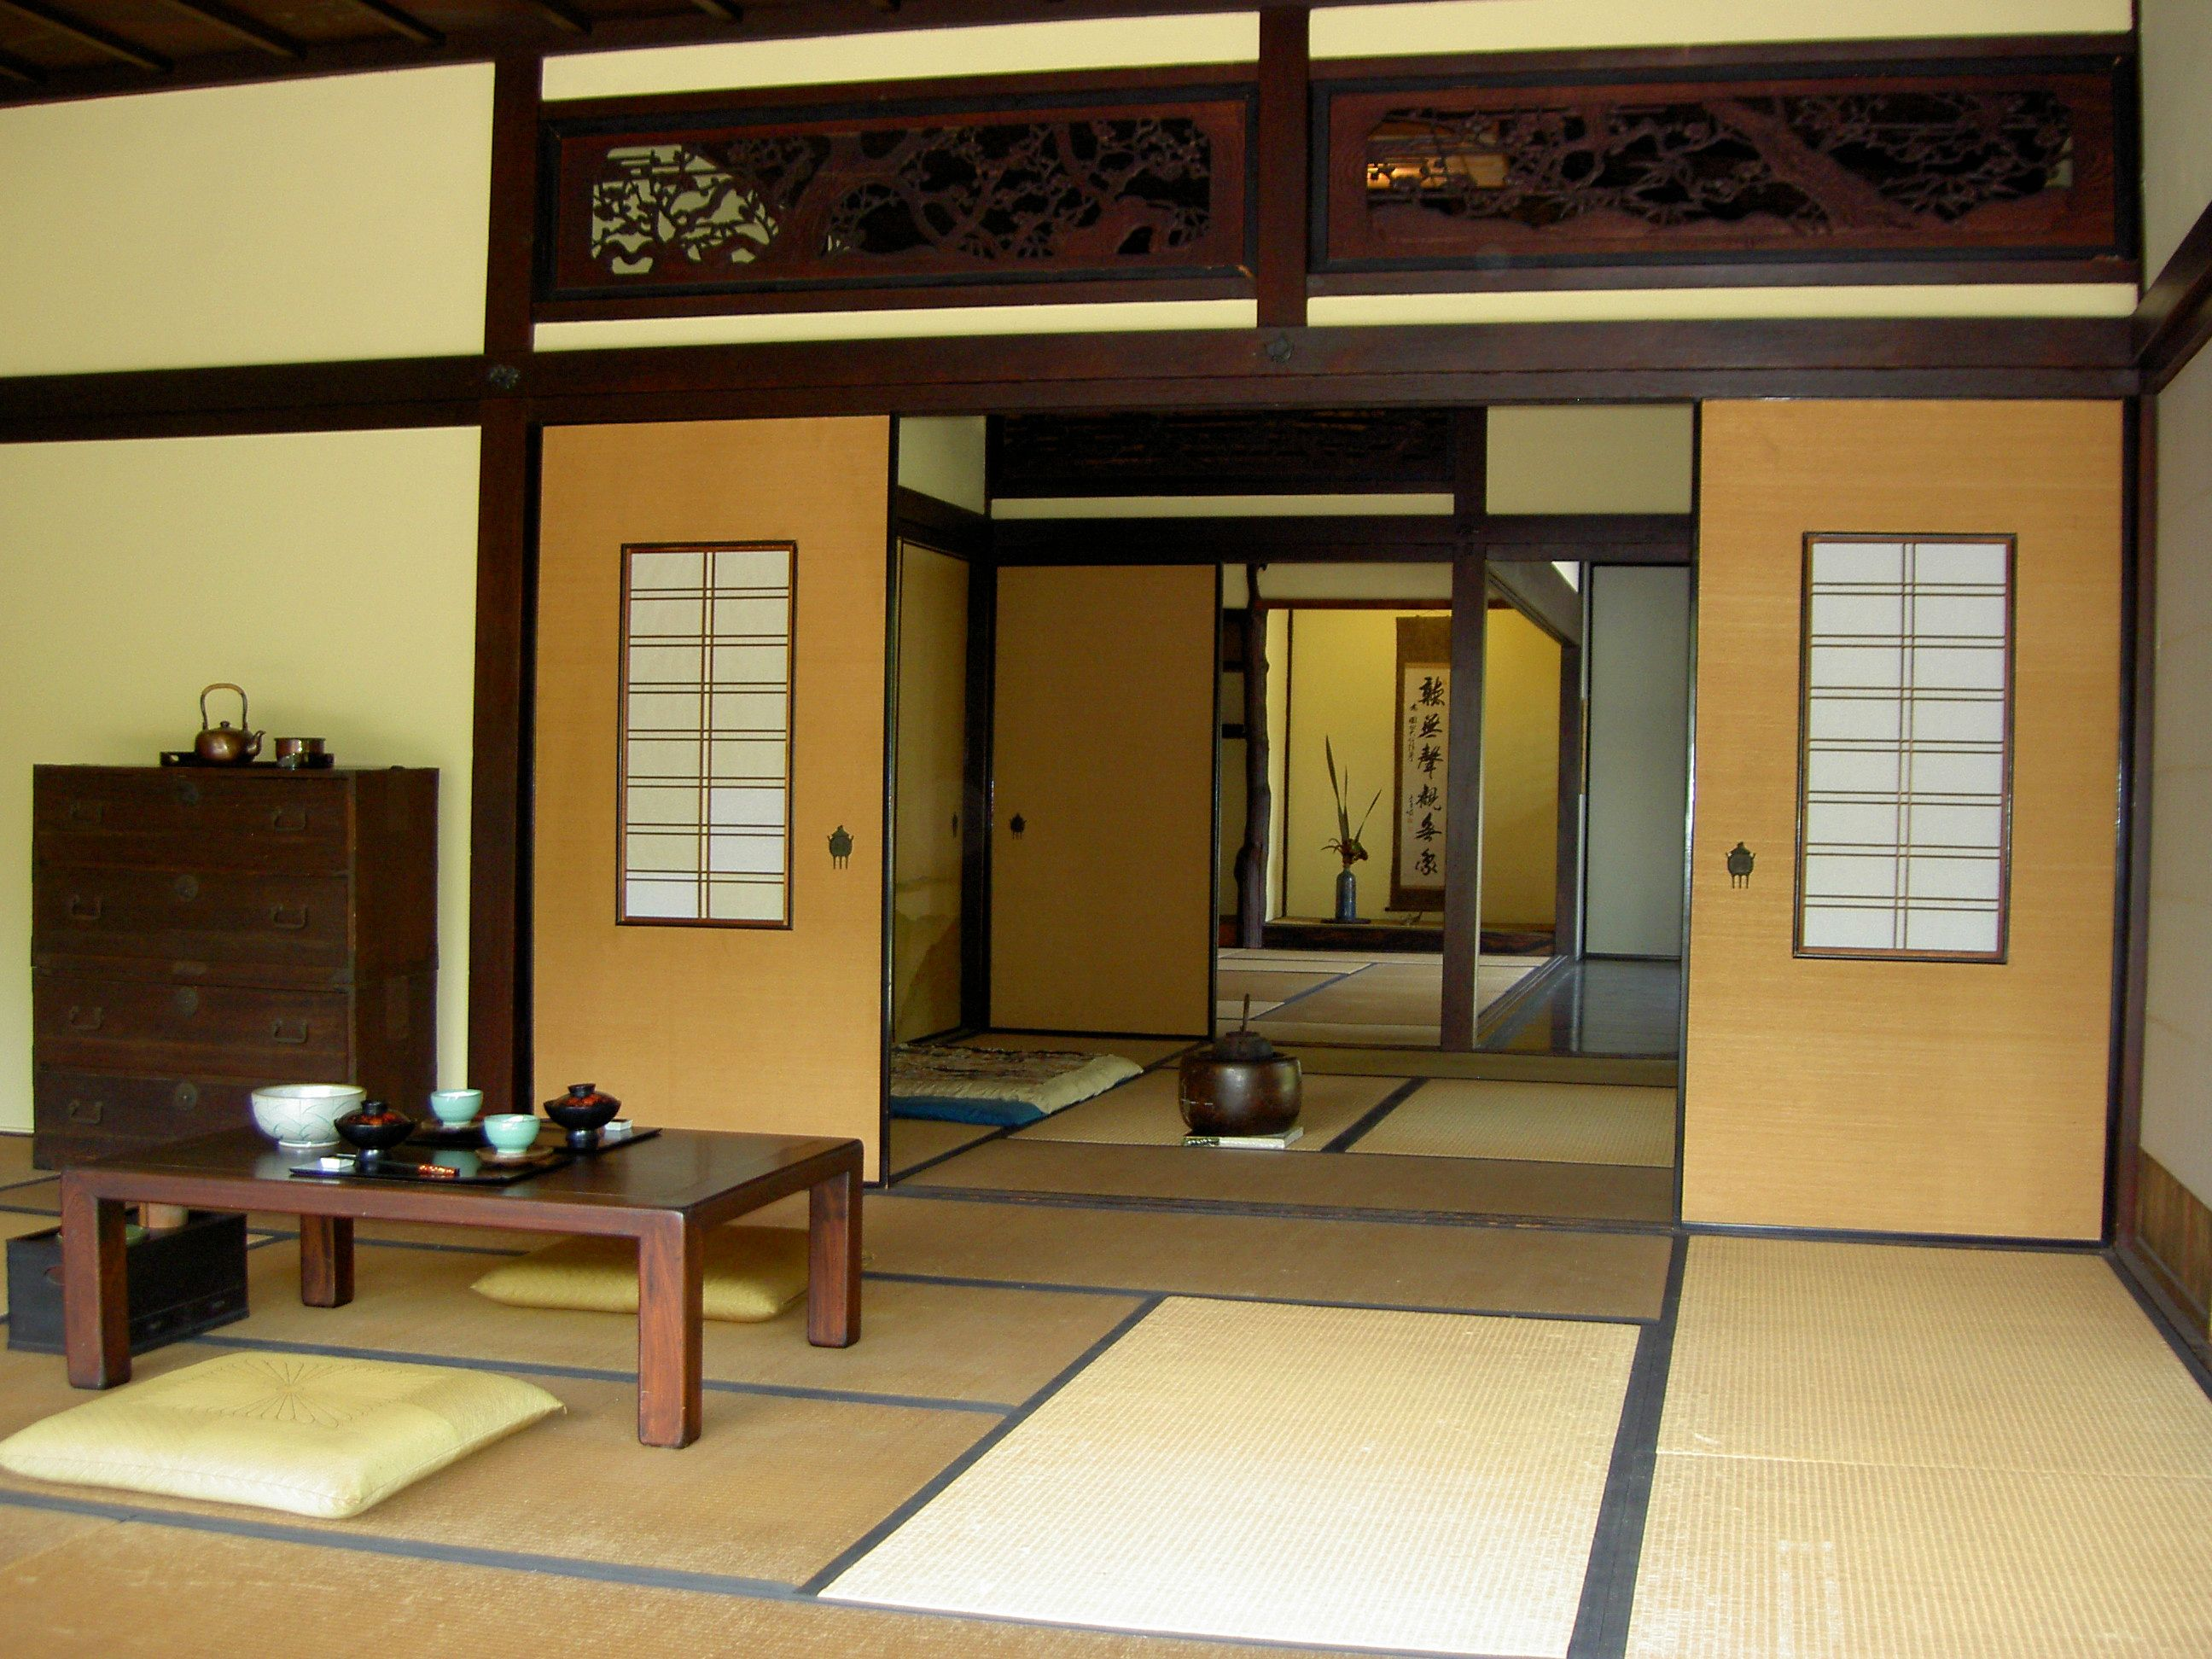 Traditional Japanese Home Design best 20 traditional japanese house ideas on pinterest japanese house japanese architecture and traditional japanese Exteriors Of Japanese Houses Japanese Home Design And Japanese Art The Traditional Japanese House